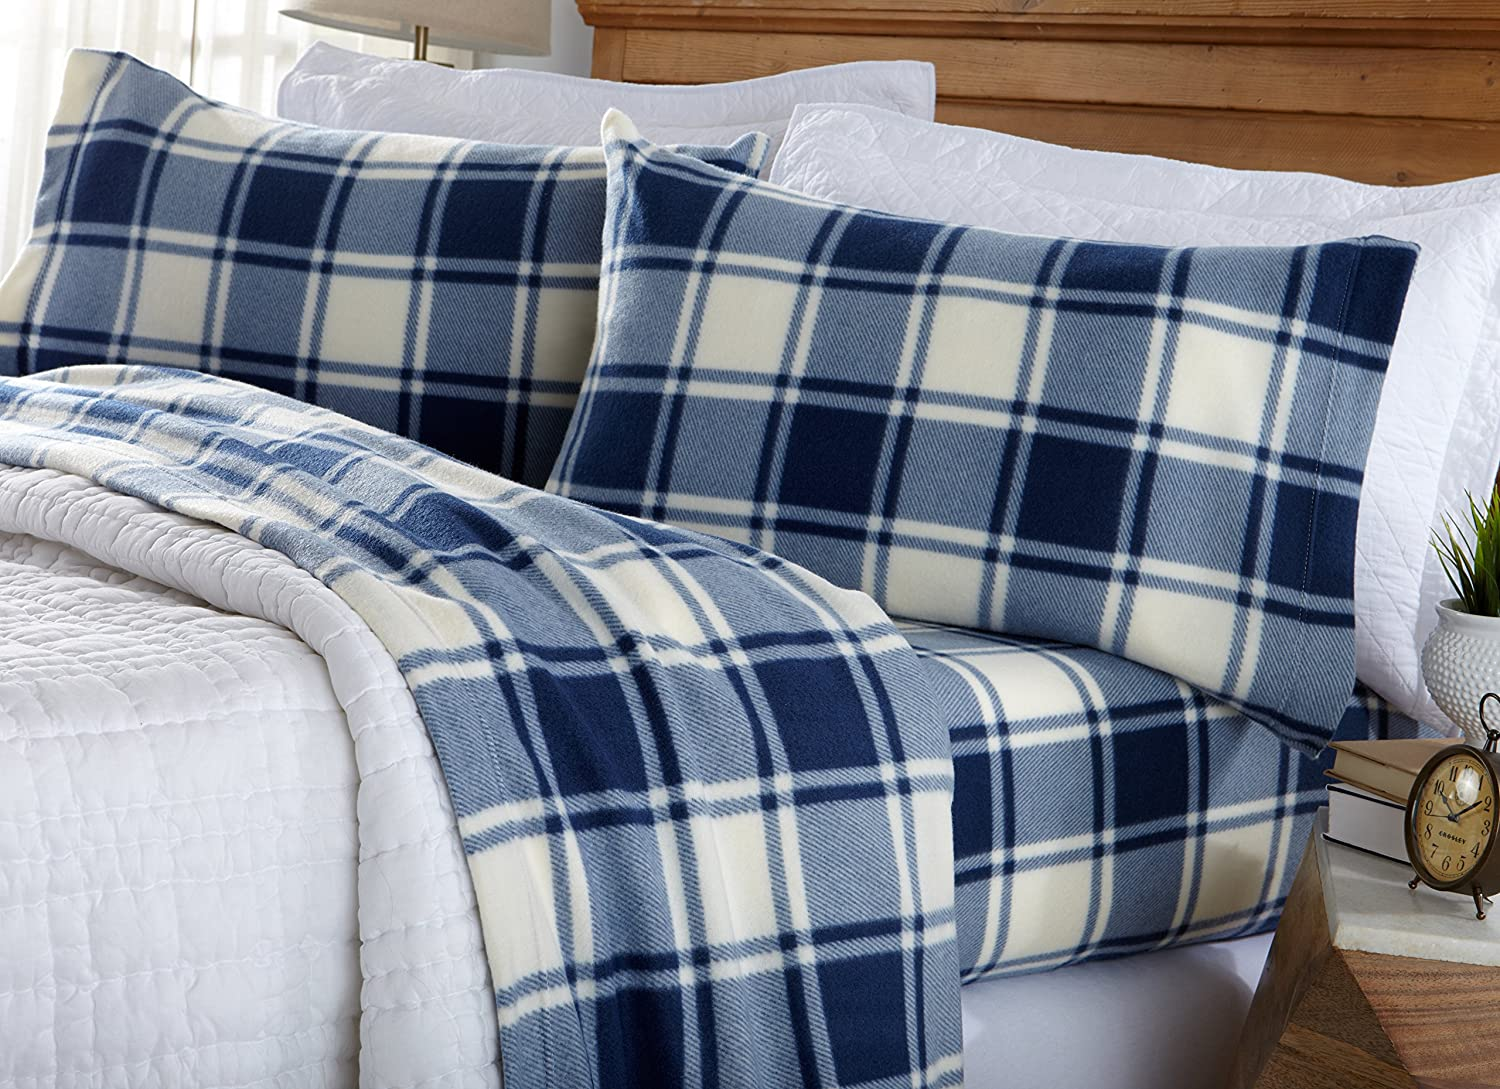 Great Bay Home Super Soft Extra Plush Plaid Fleece Sheet Set. Cozy, Warm, Durable, Smooth, Breathable Winter Sheets with Plaid Pattern. Dara Collection Brand. (Queen, Navy)